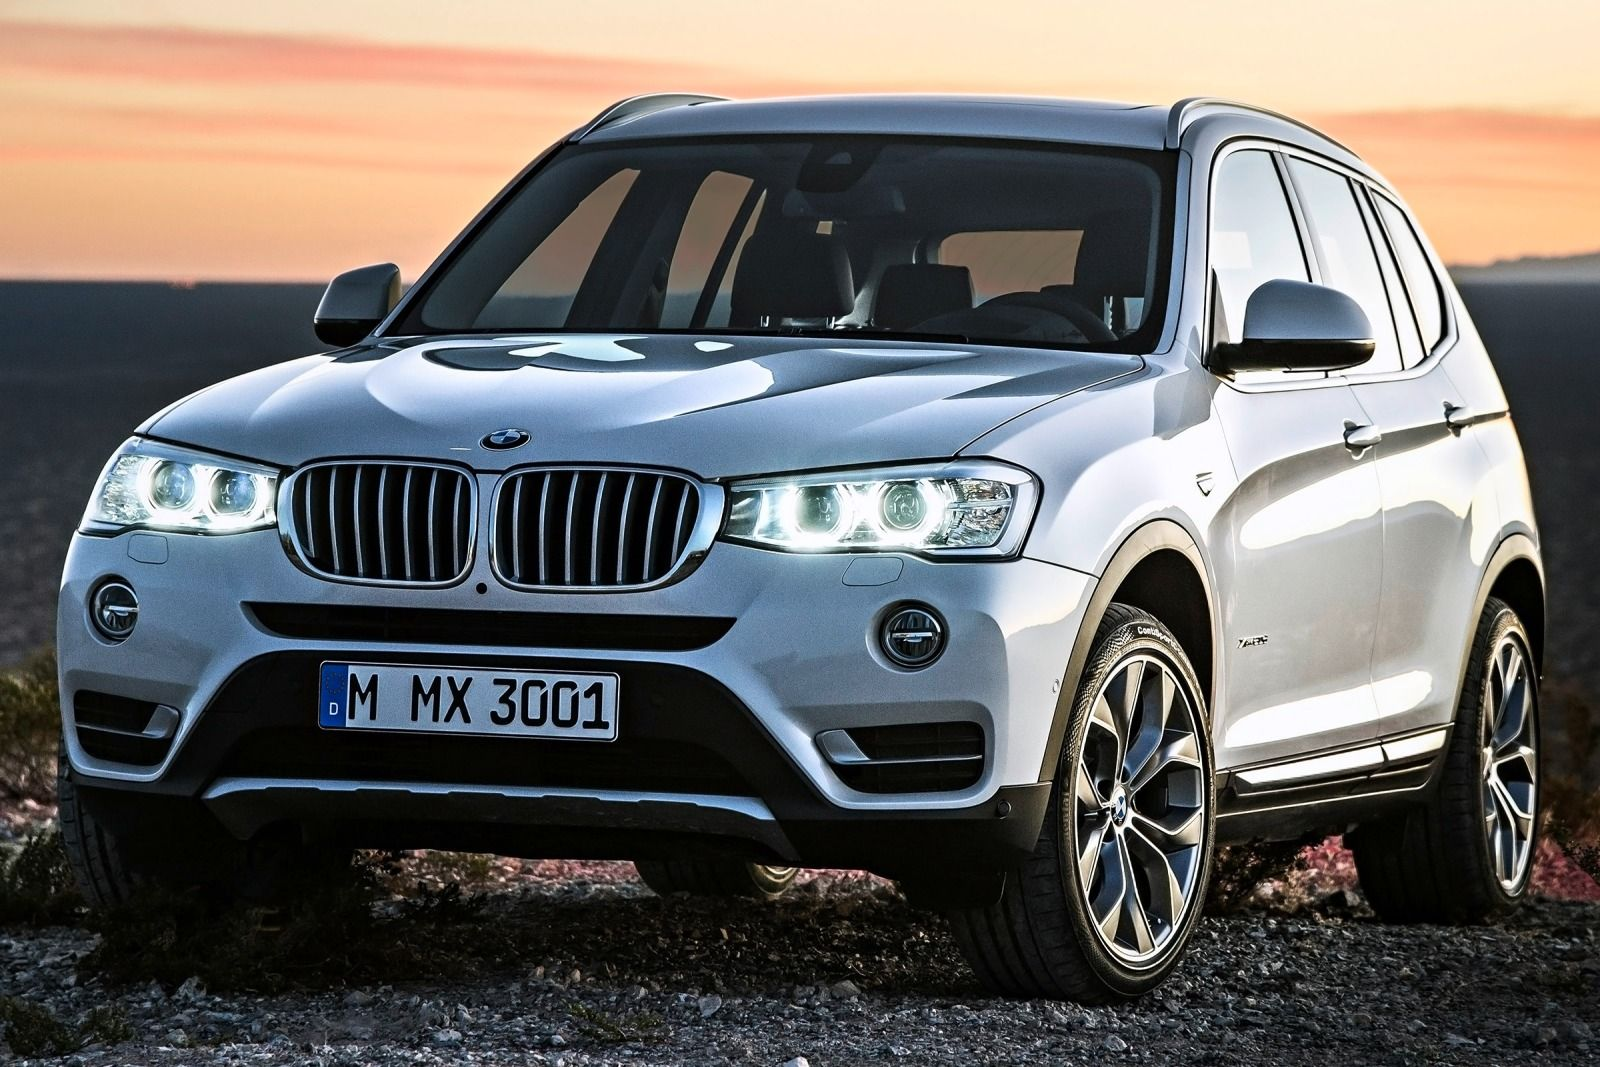 Bmw Convertible Bmw Suv Msrp Bmw Car Pictures All Types All Models